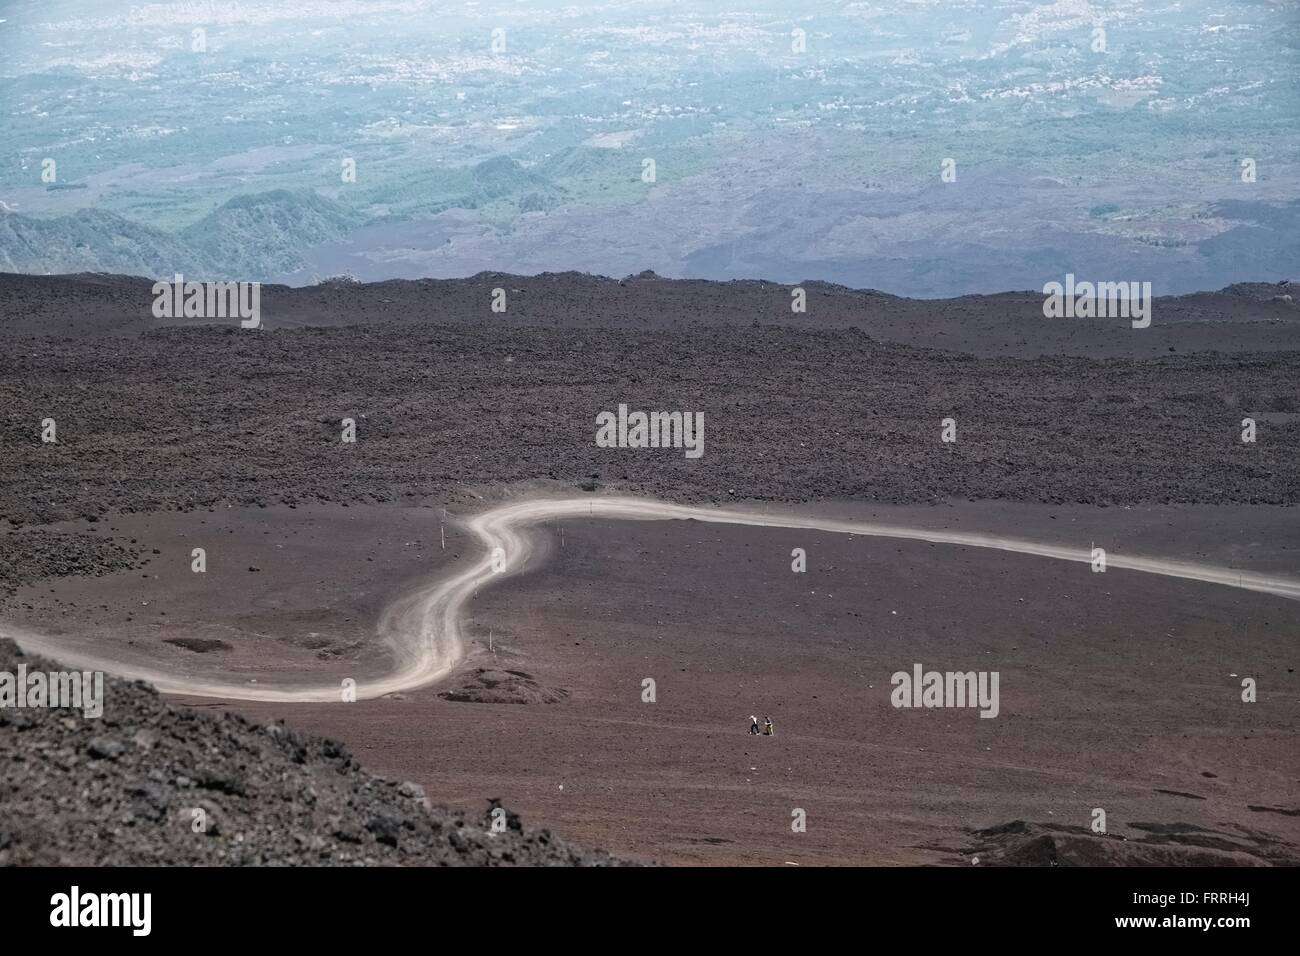 Italy, Sicily, Mt Etna: Volcanic landscape with winding dusty road with sea in distance - Stock Image